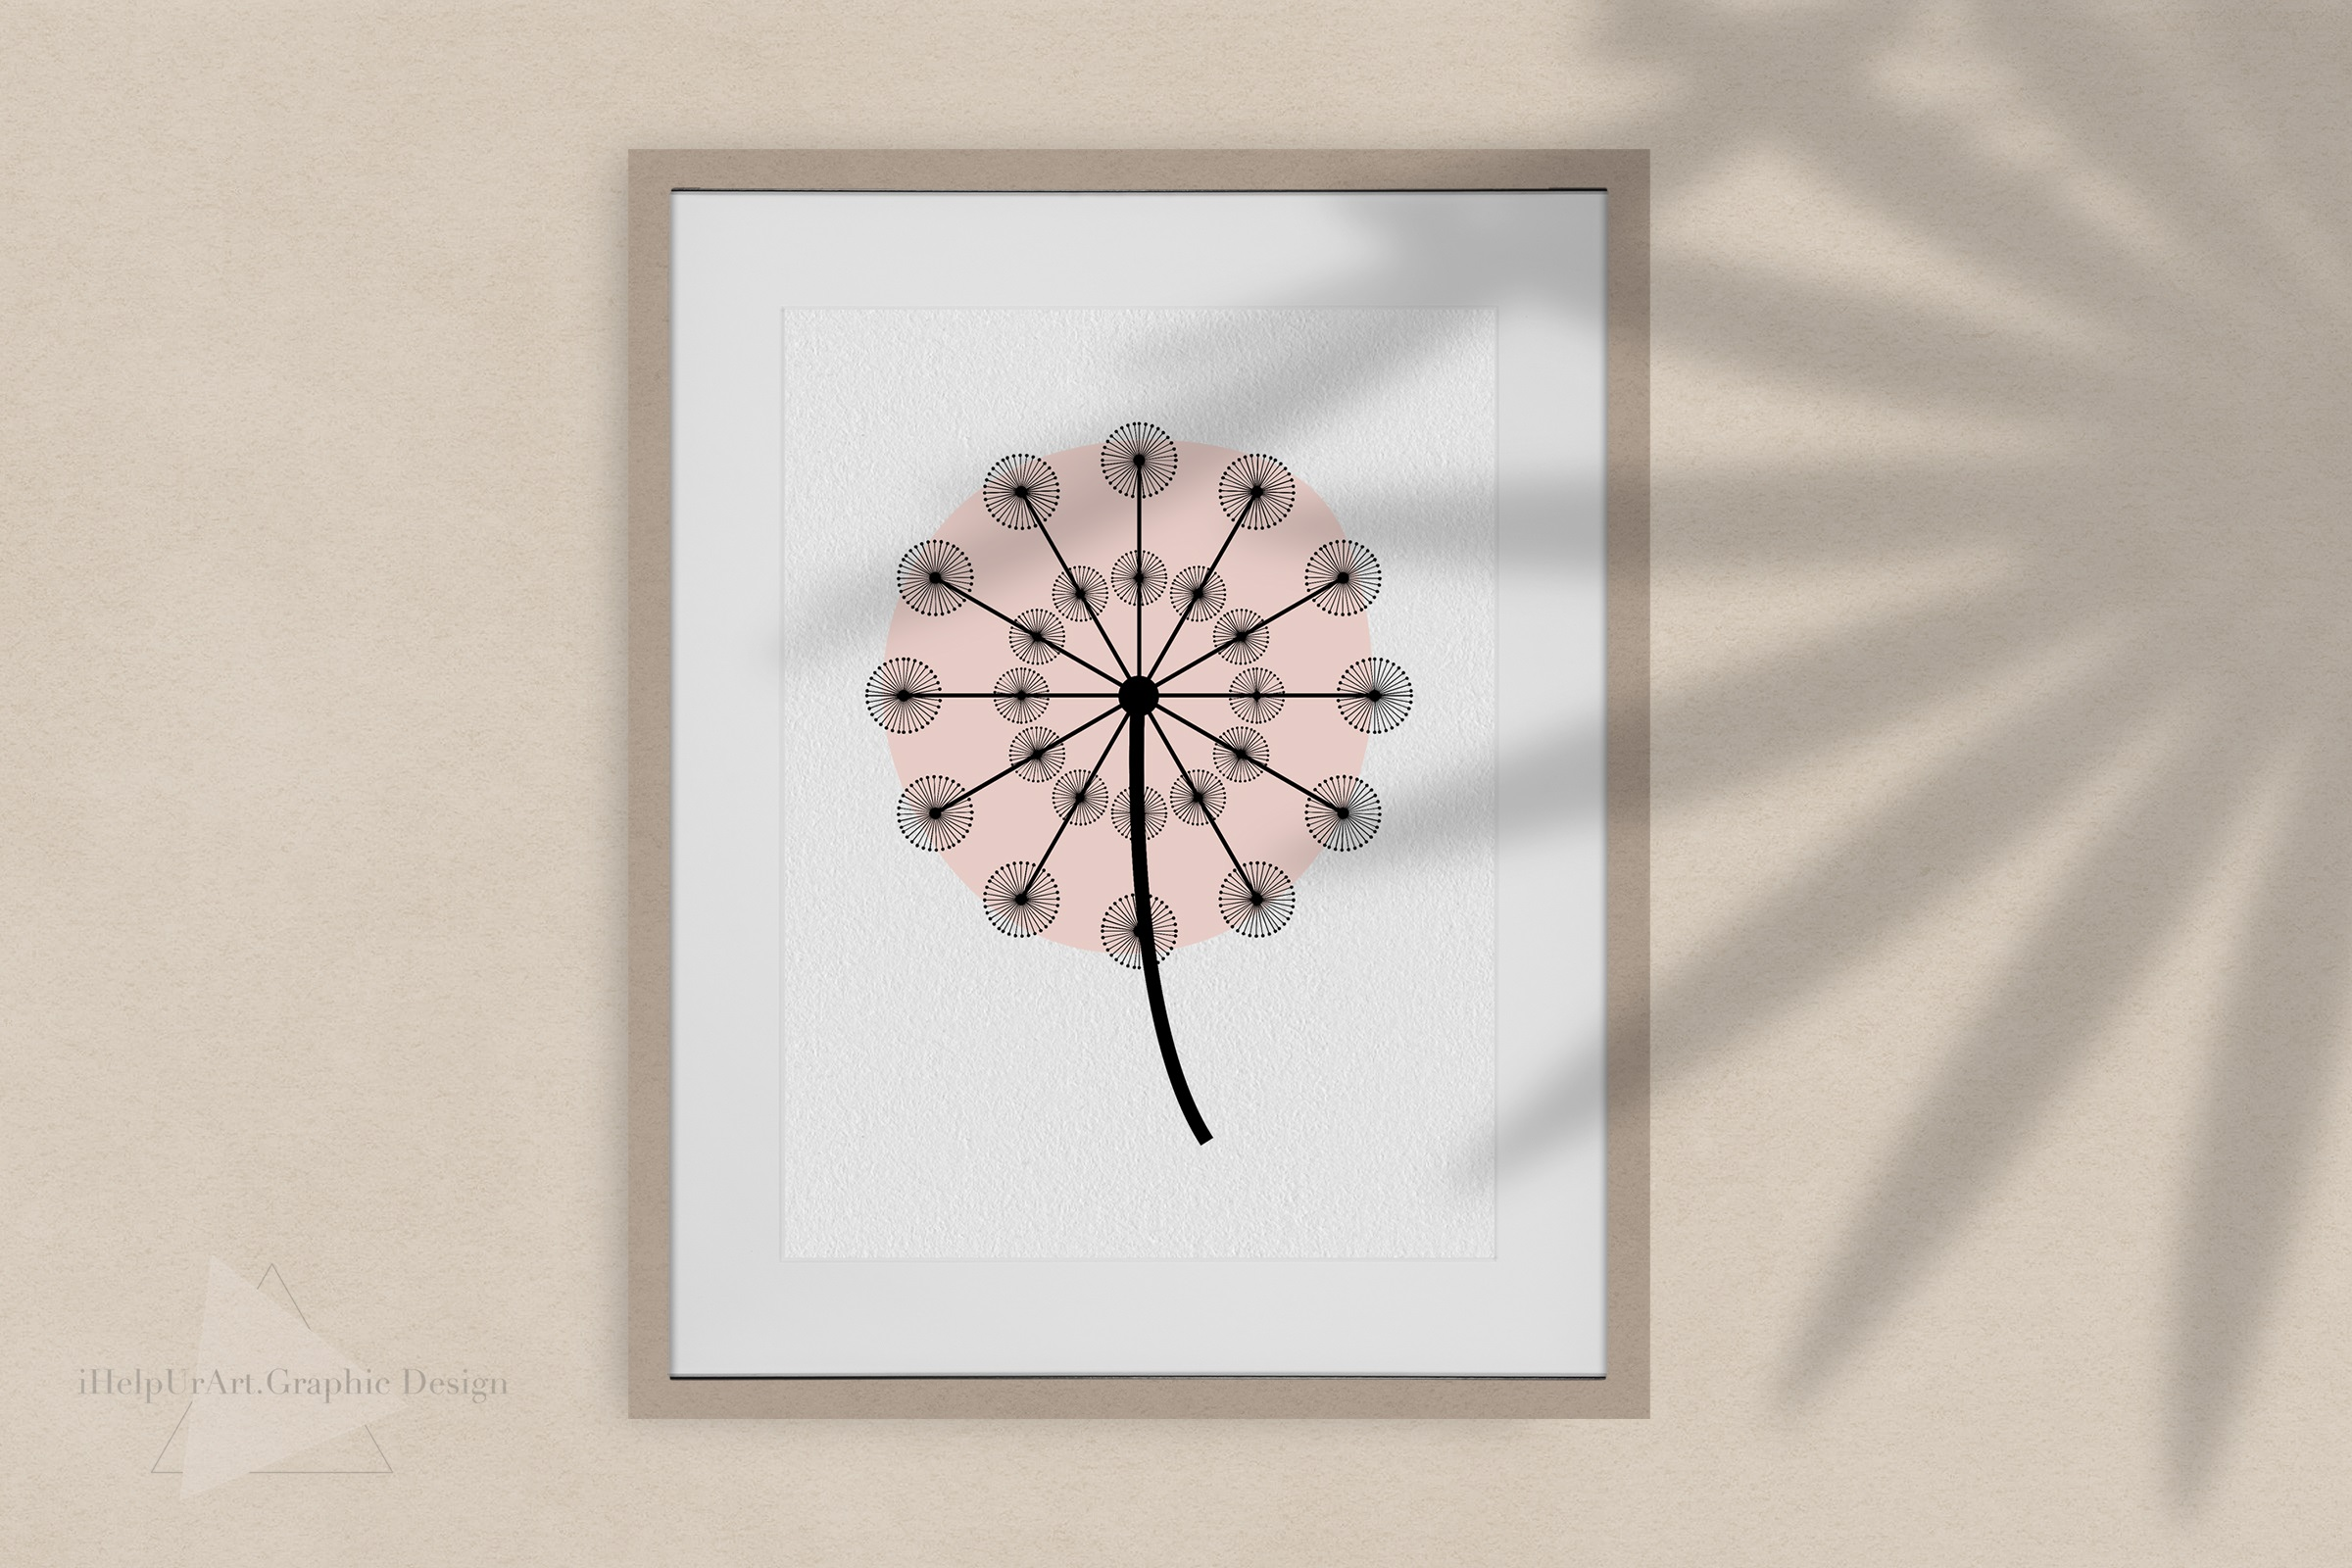 Dandelion Clipart - Floral Design - Modern Abstract Flowers example image 2